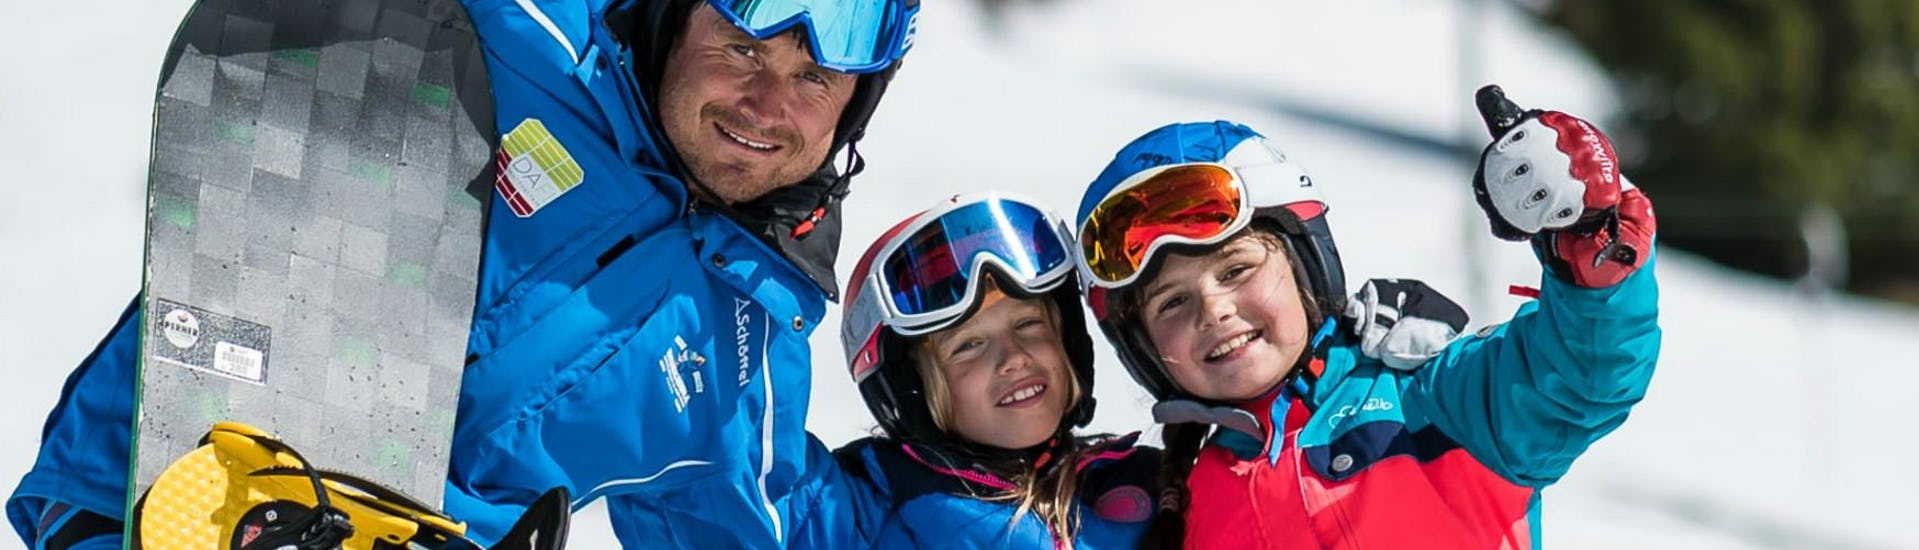 Snowboarding Lessons incl. equipment (8-15 years)